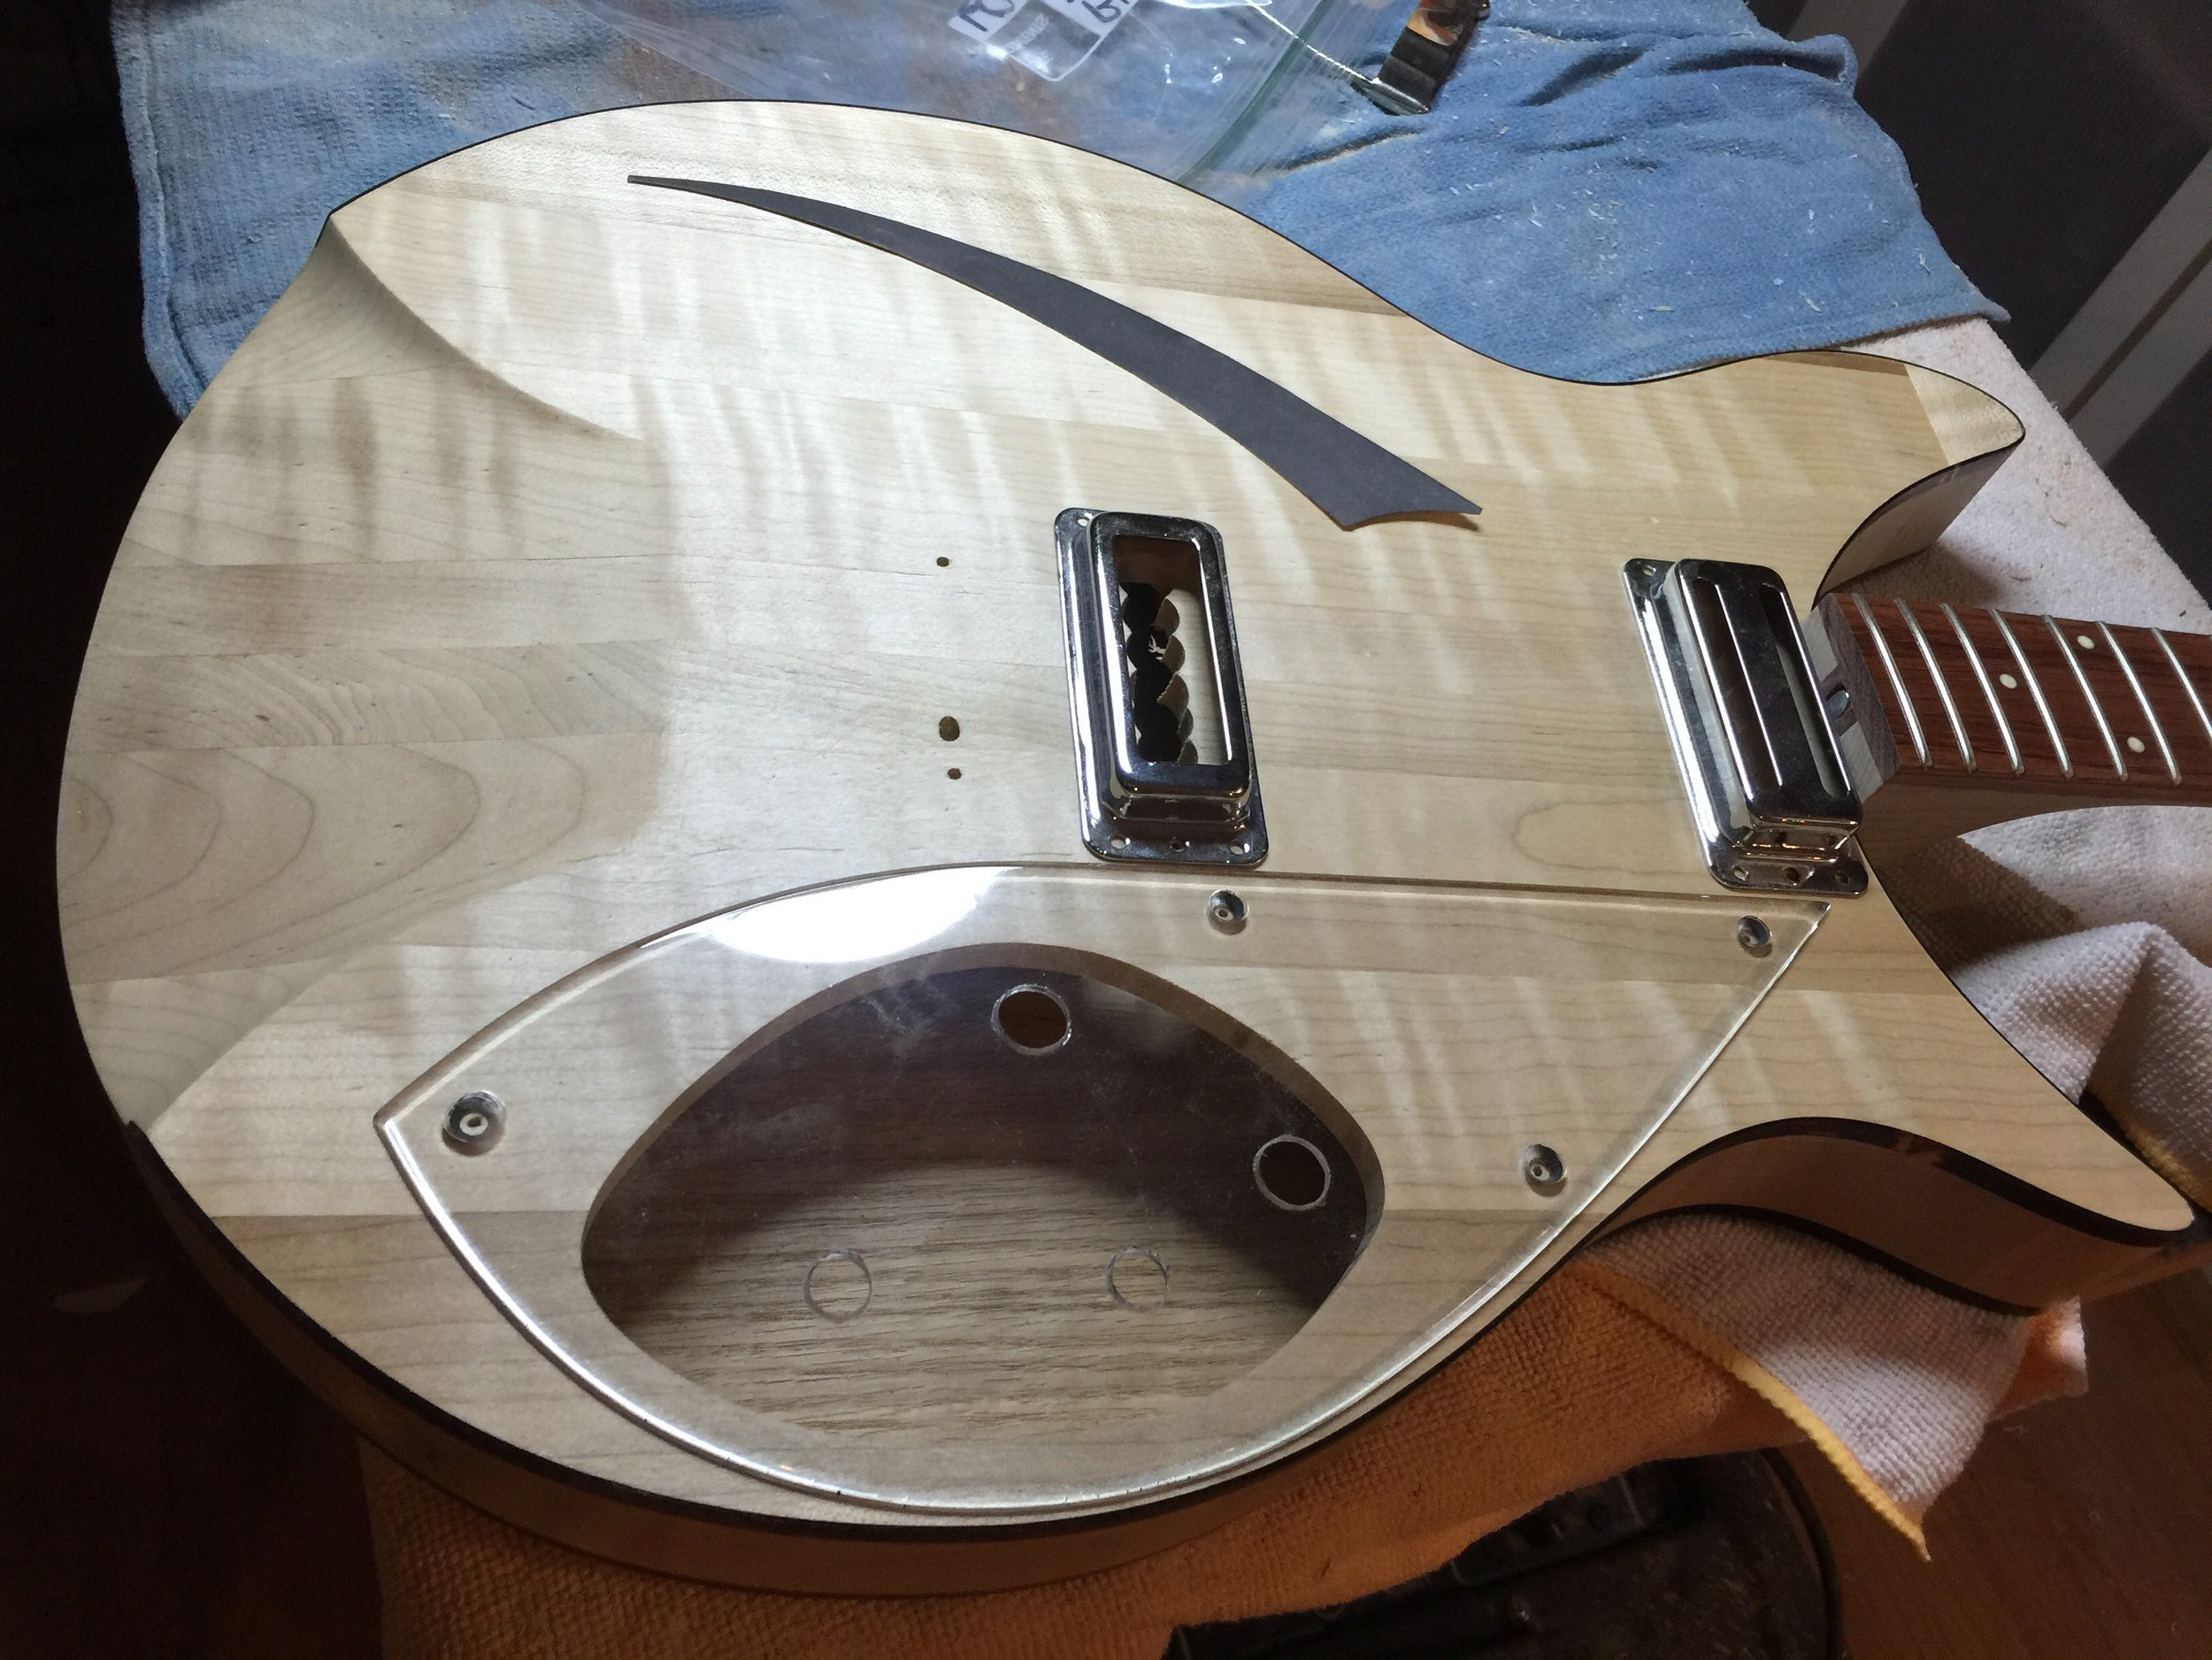 THE THE BODY AFTER SEALING, HAVING THE PICKGUARD AND PICKUPS FITTED